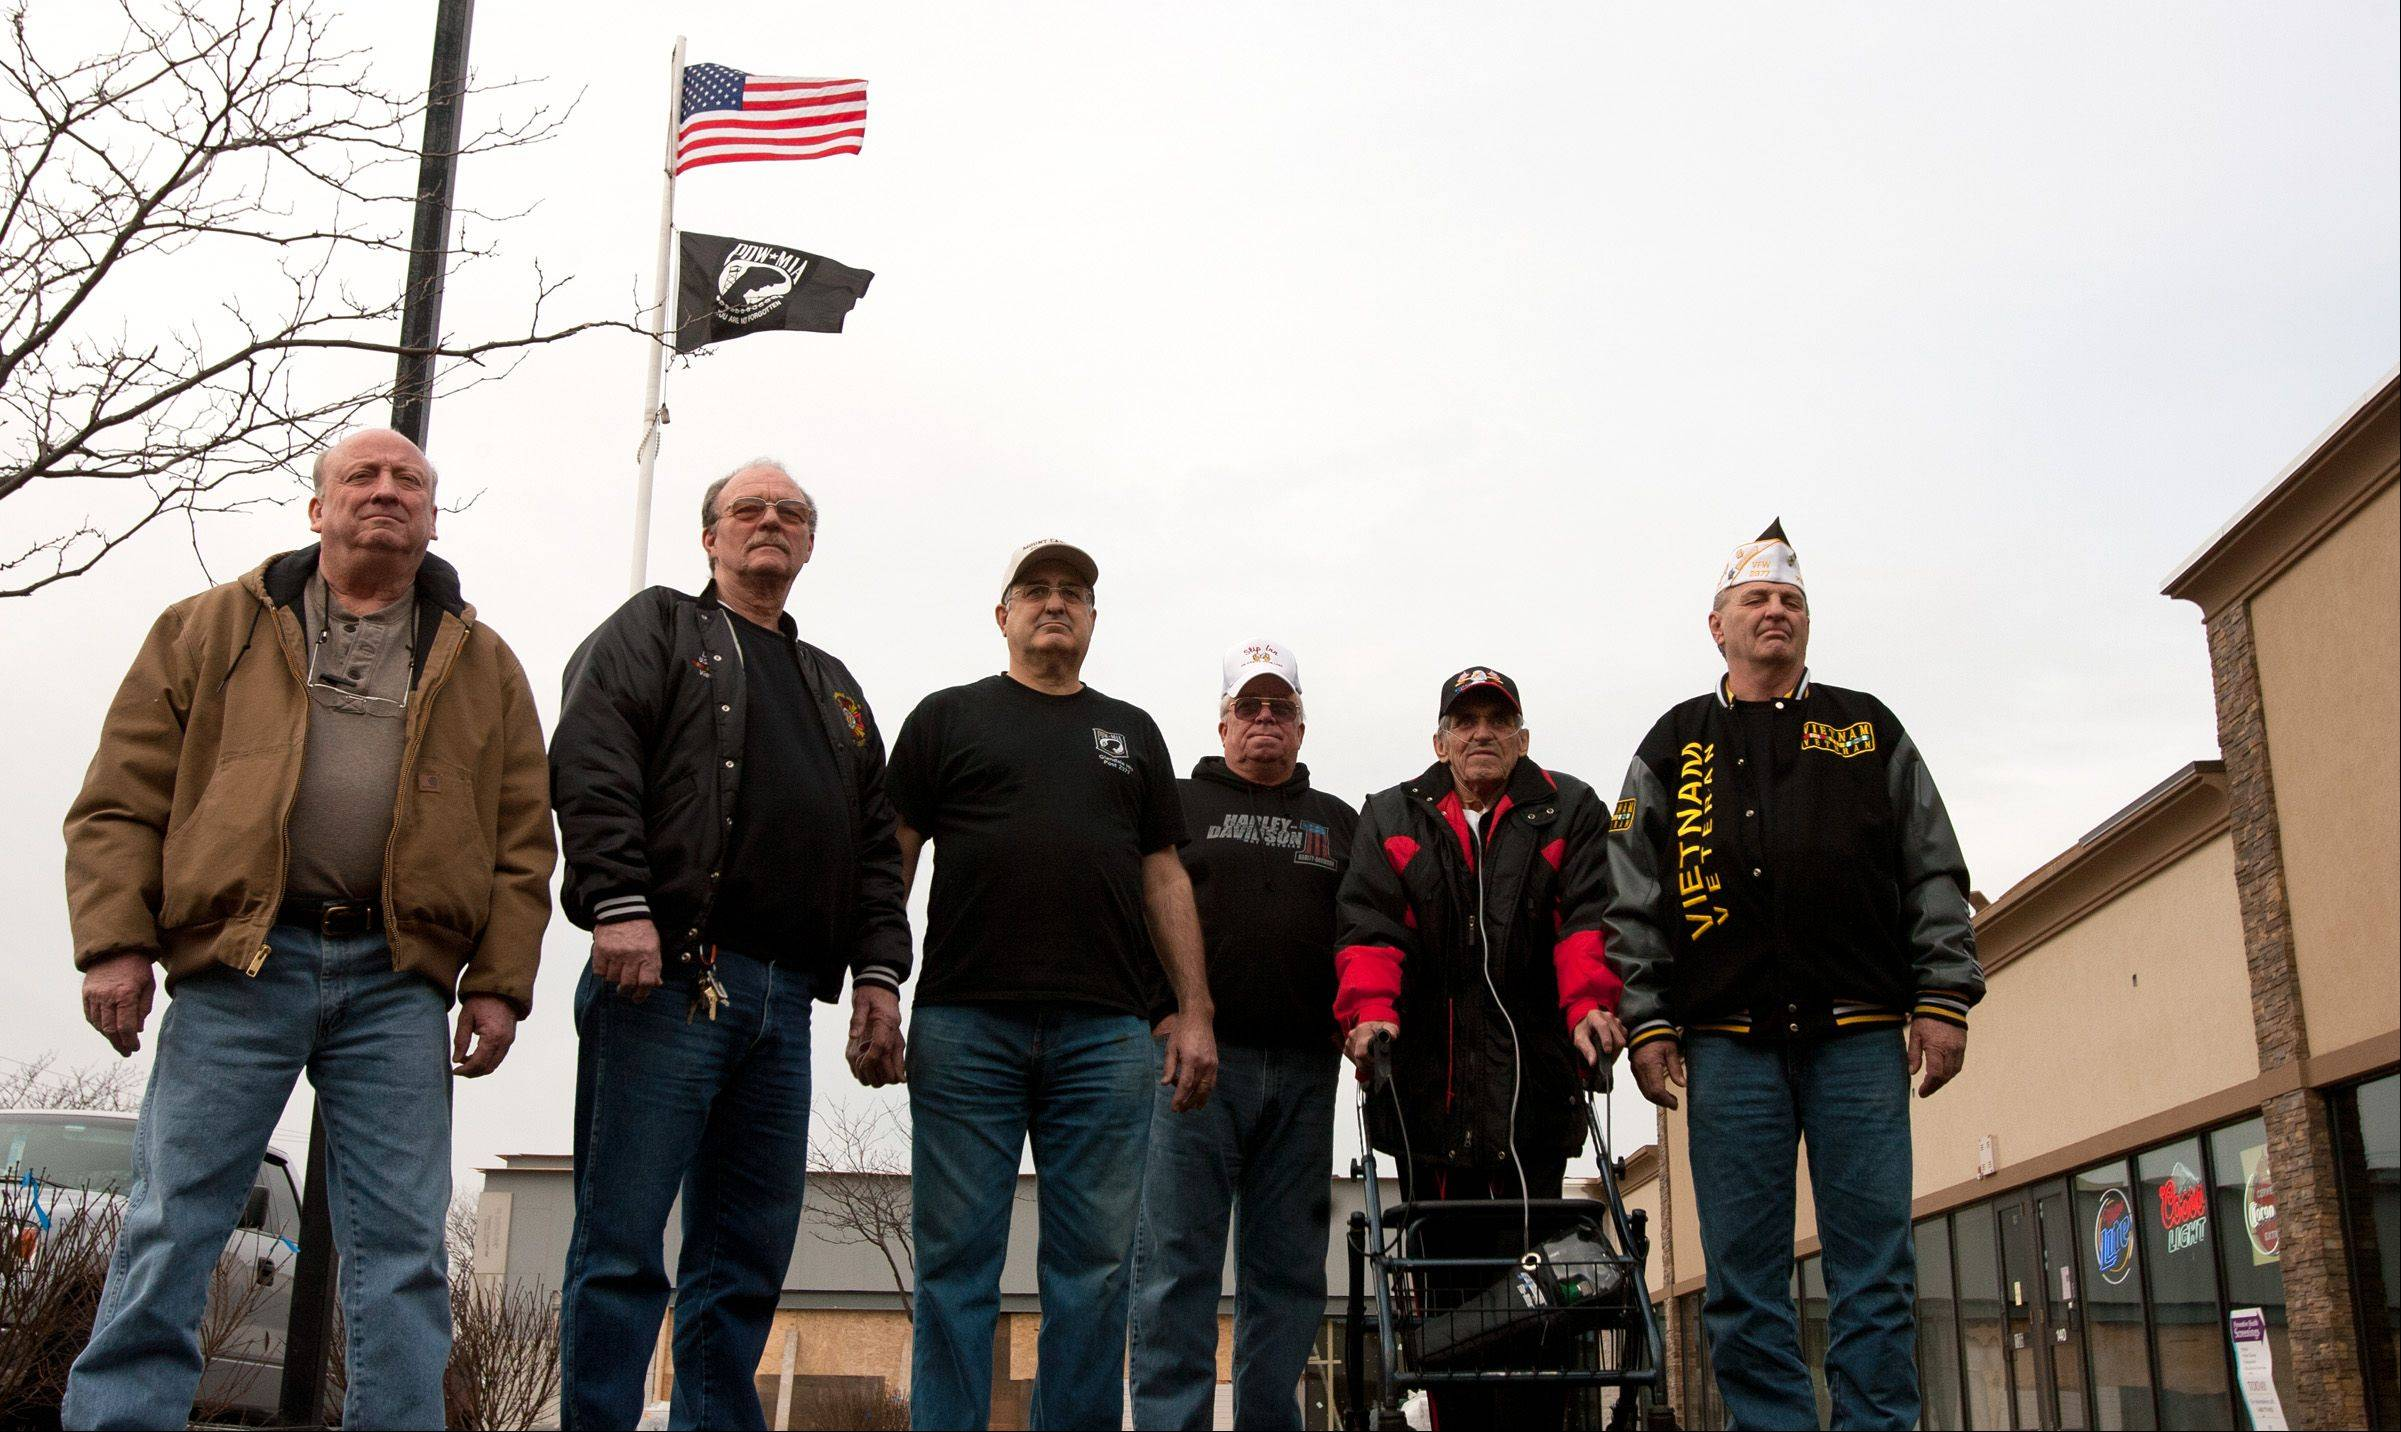 Members of VFW Post 2377, from left, Jimmy Keys, Tim Loome, Maury Deering, Greg Van Meter, Herbert Kalischefski and John Kowalczyk say they will fight orders from the leaseholder to remove the American flag from their Glendale Heights headquarters.